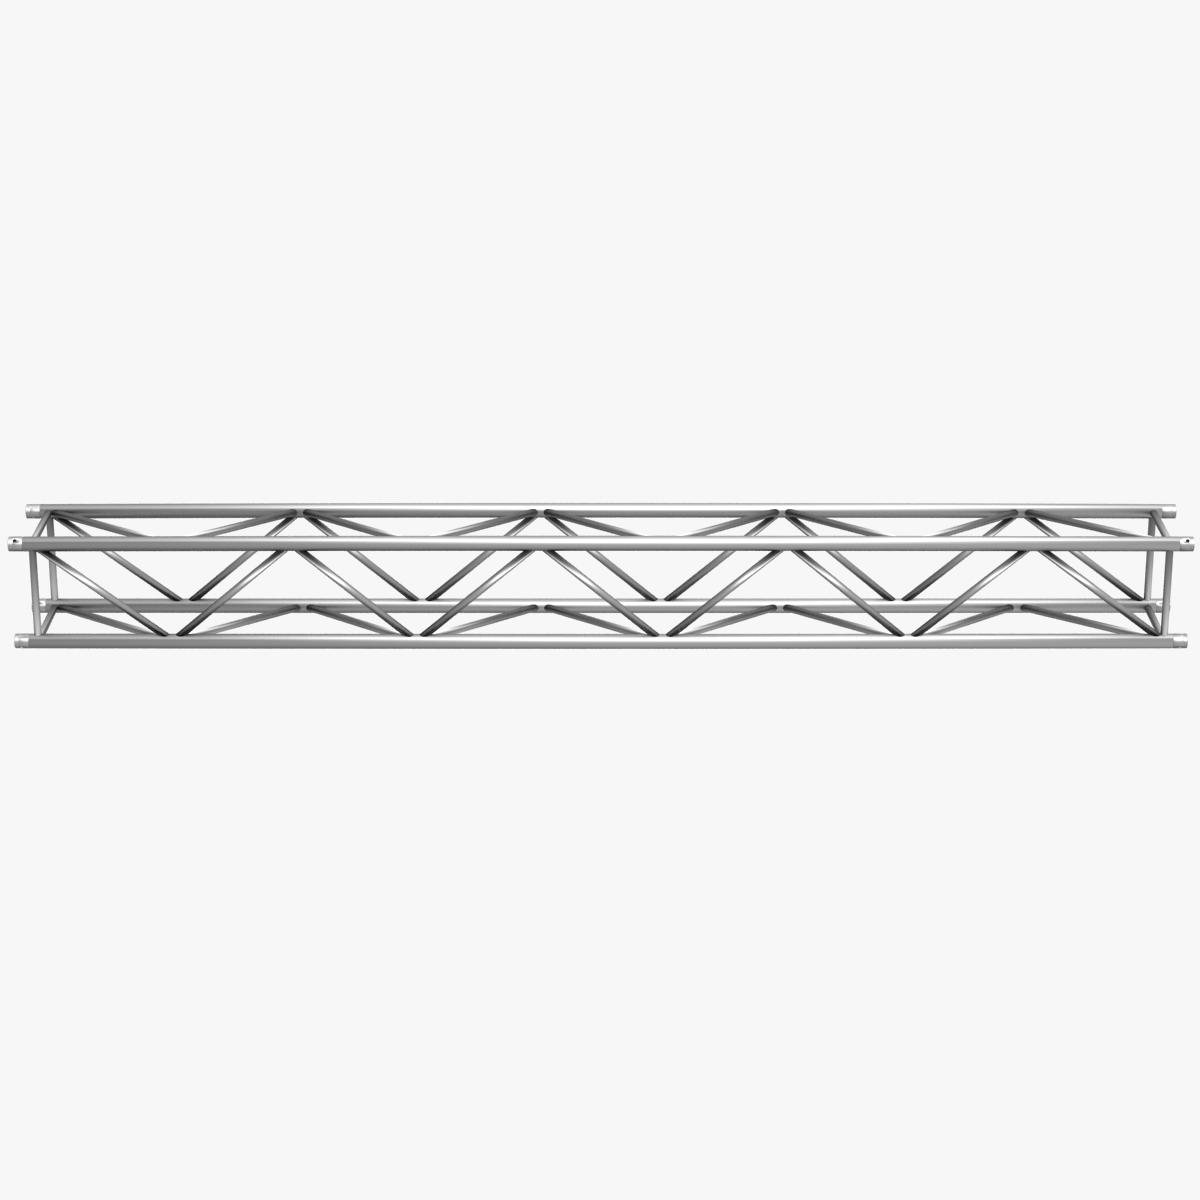 big square truss (collection 10 modular pieces) 3d model 3ds dxf fbx c4d dae  268557